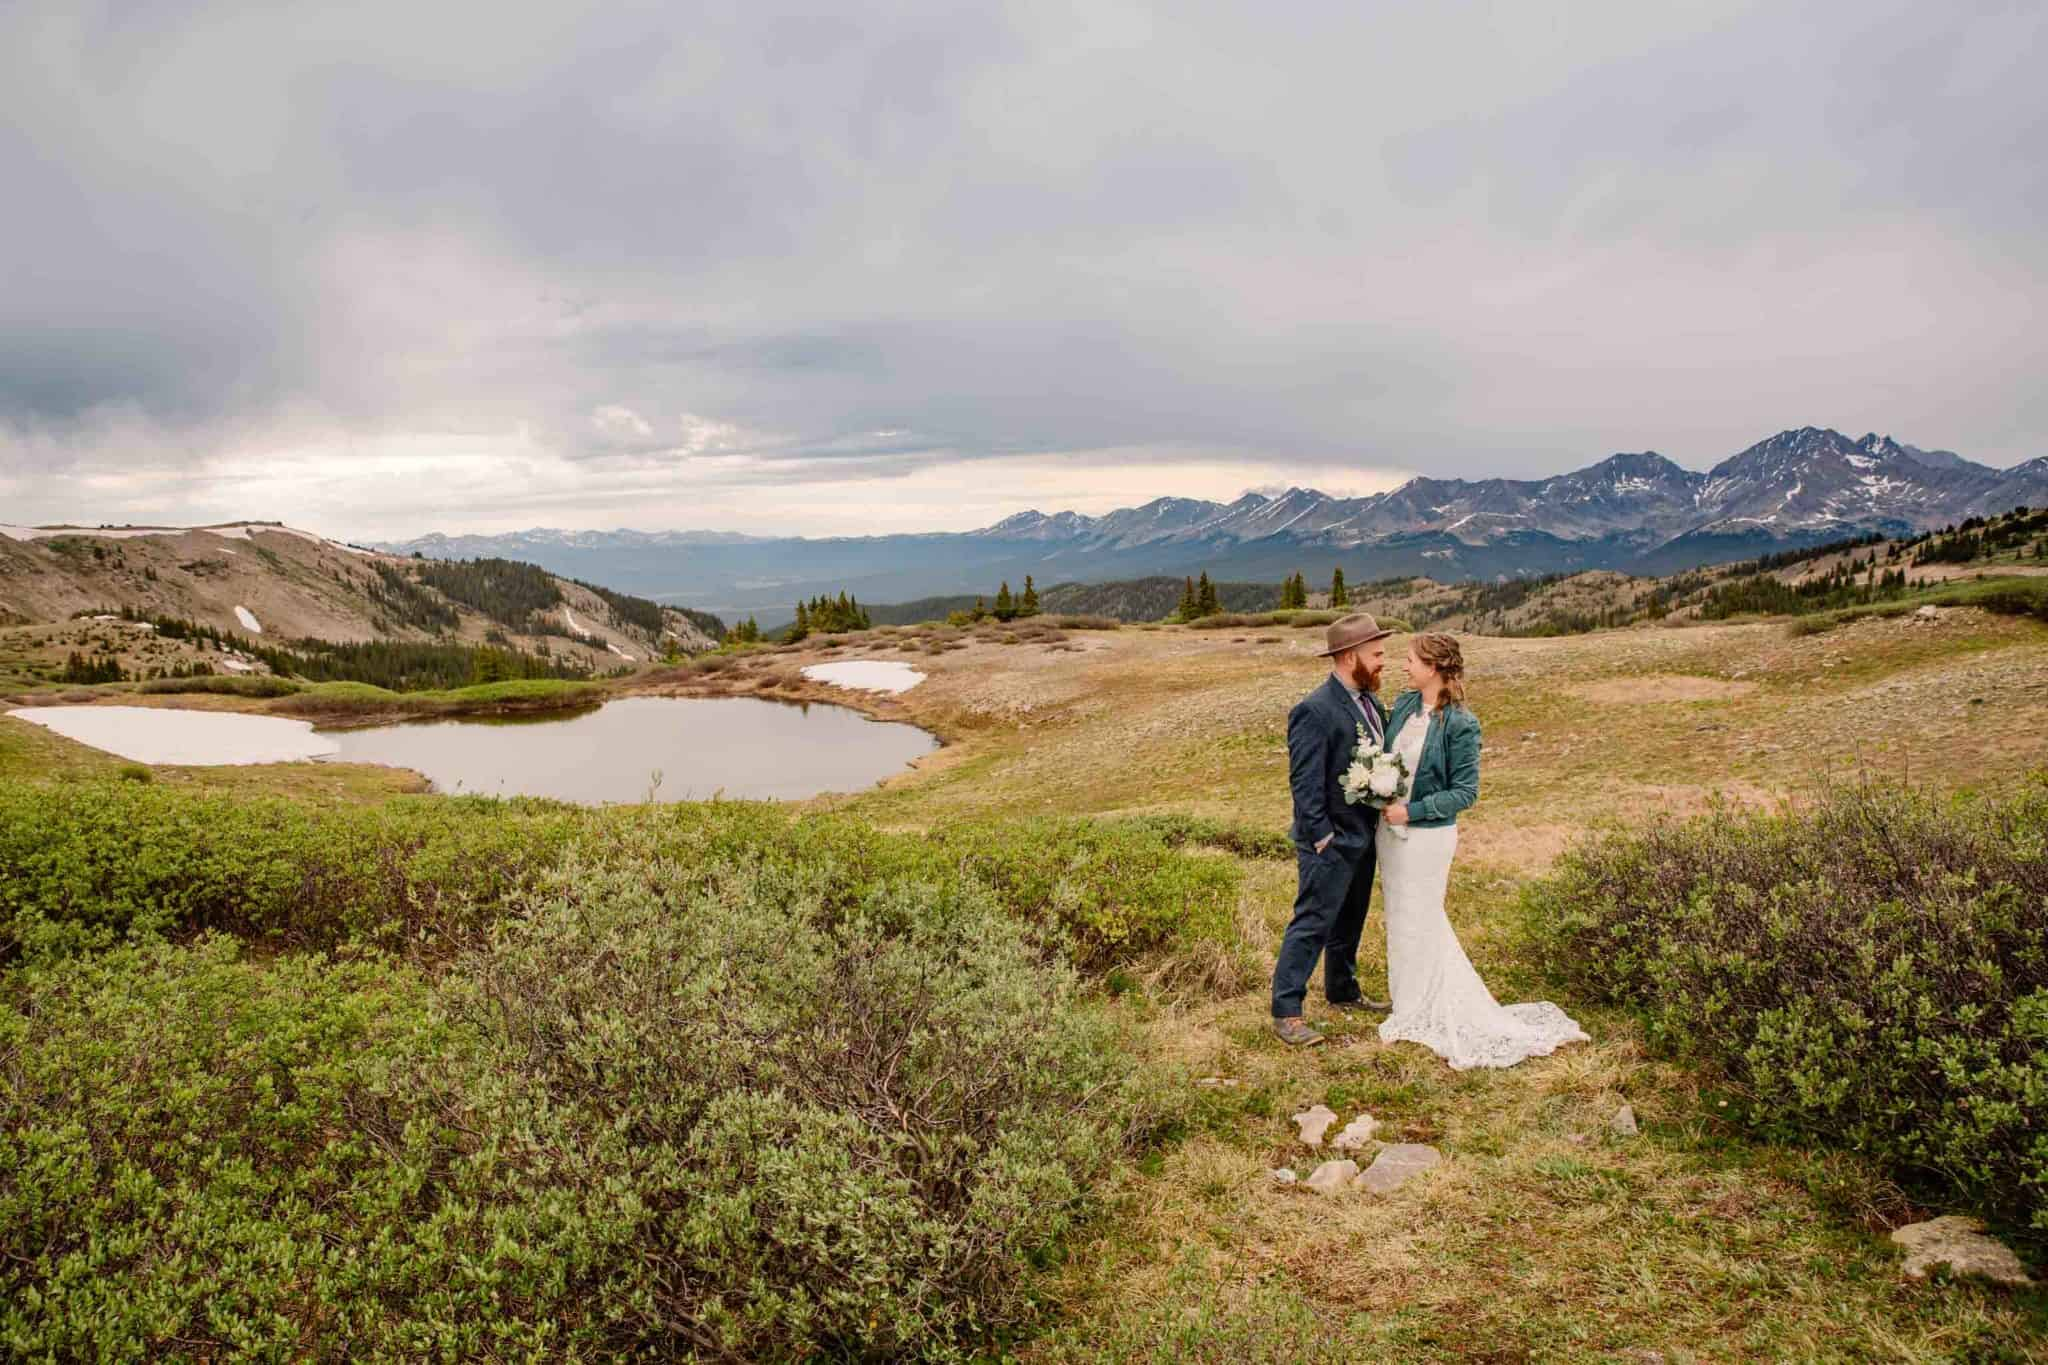 couple in Colorado on top of a moutain near an alpine lake with stunning views all around them